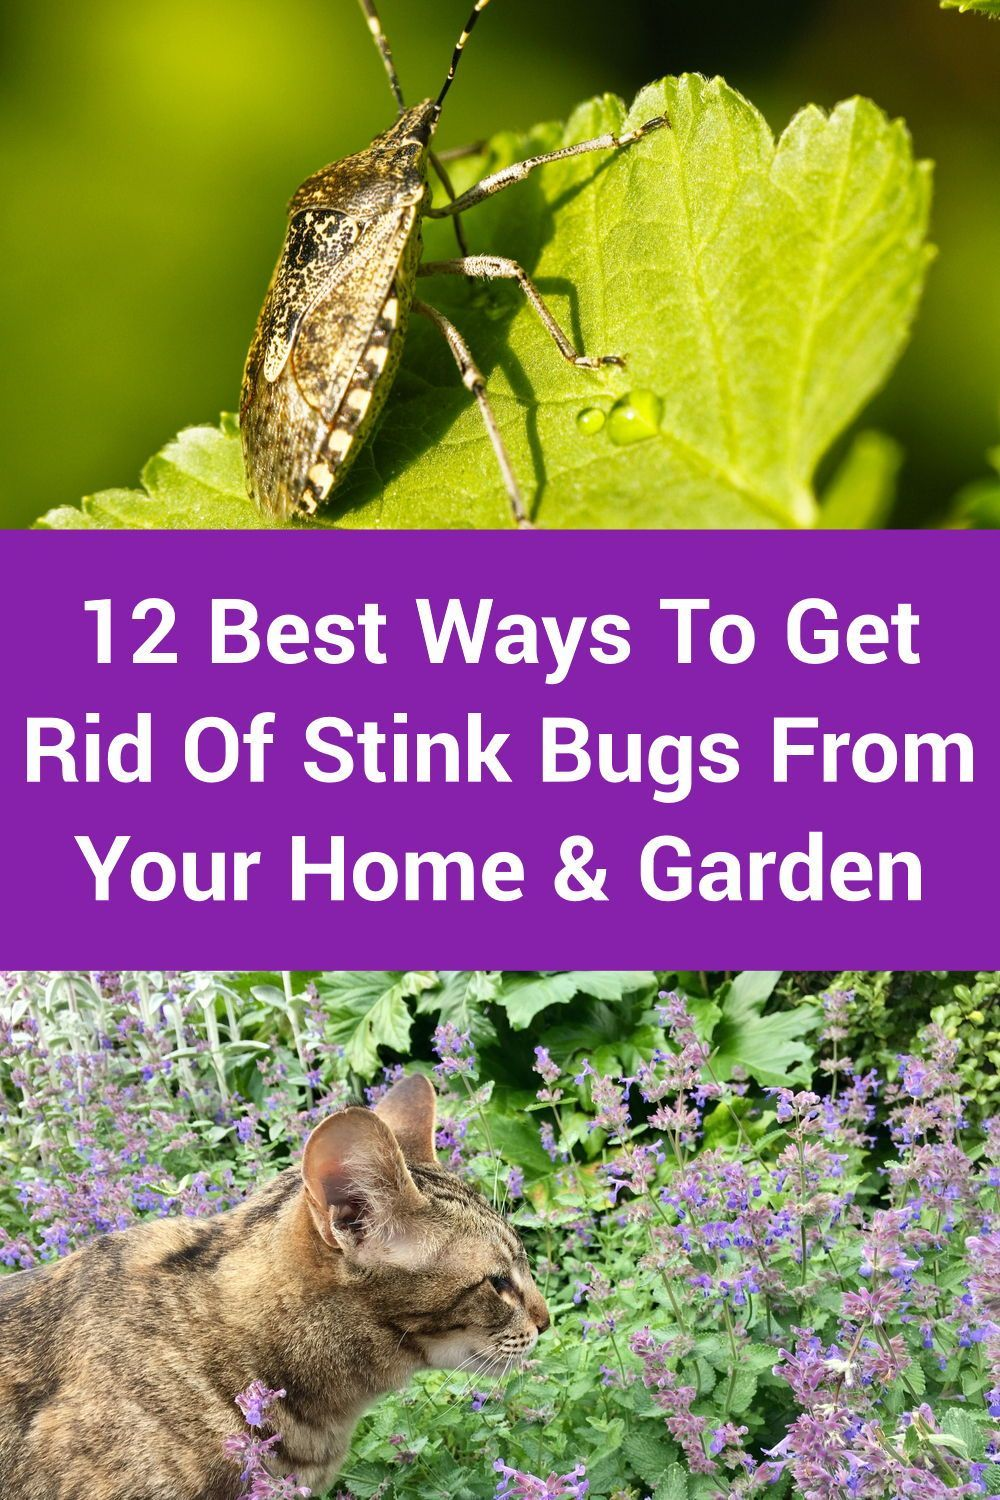 12 best ways to get rid of stink bugs from your home